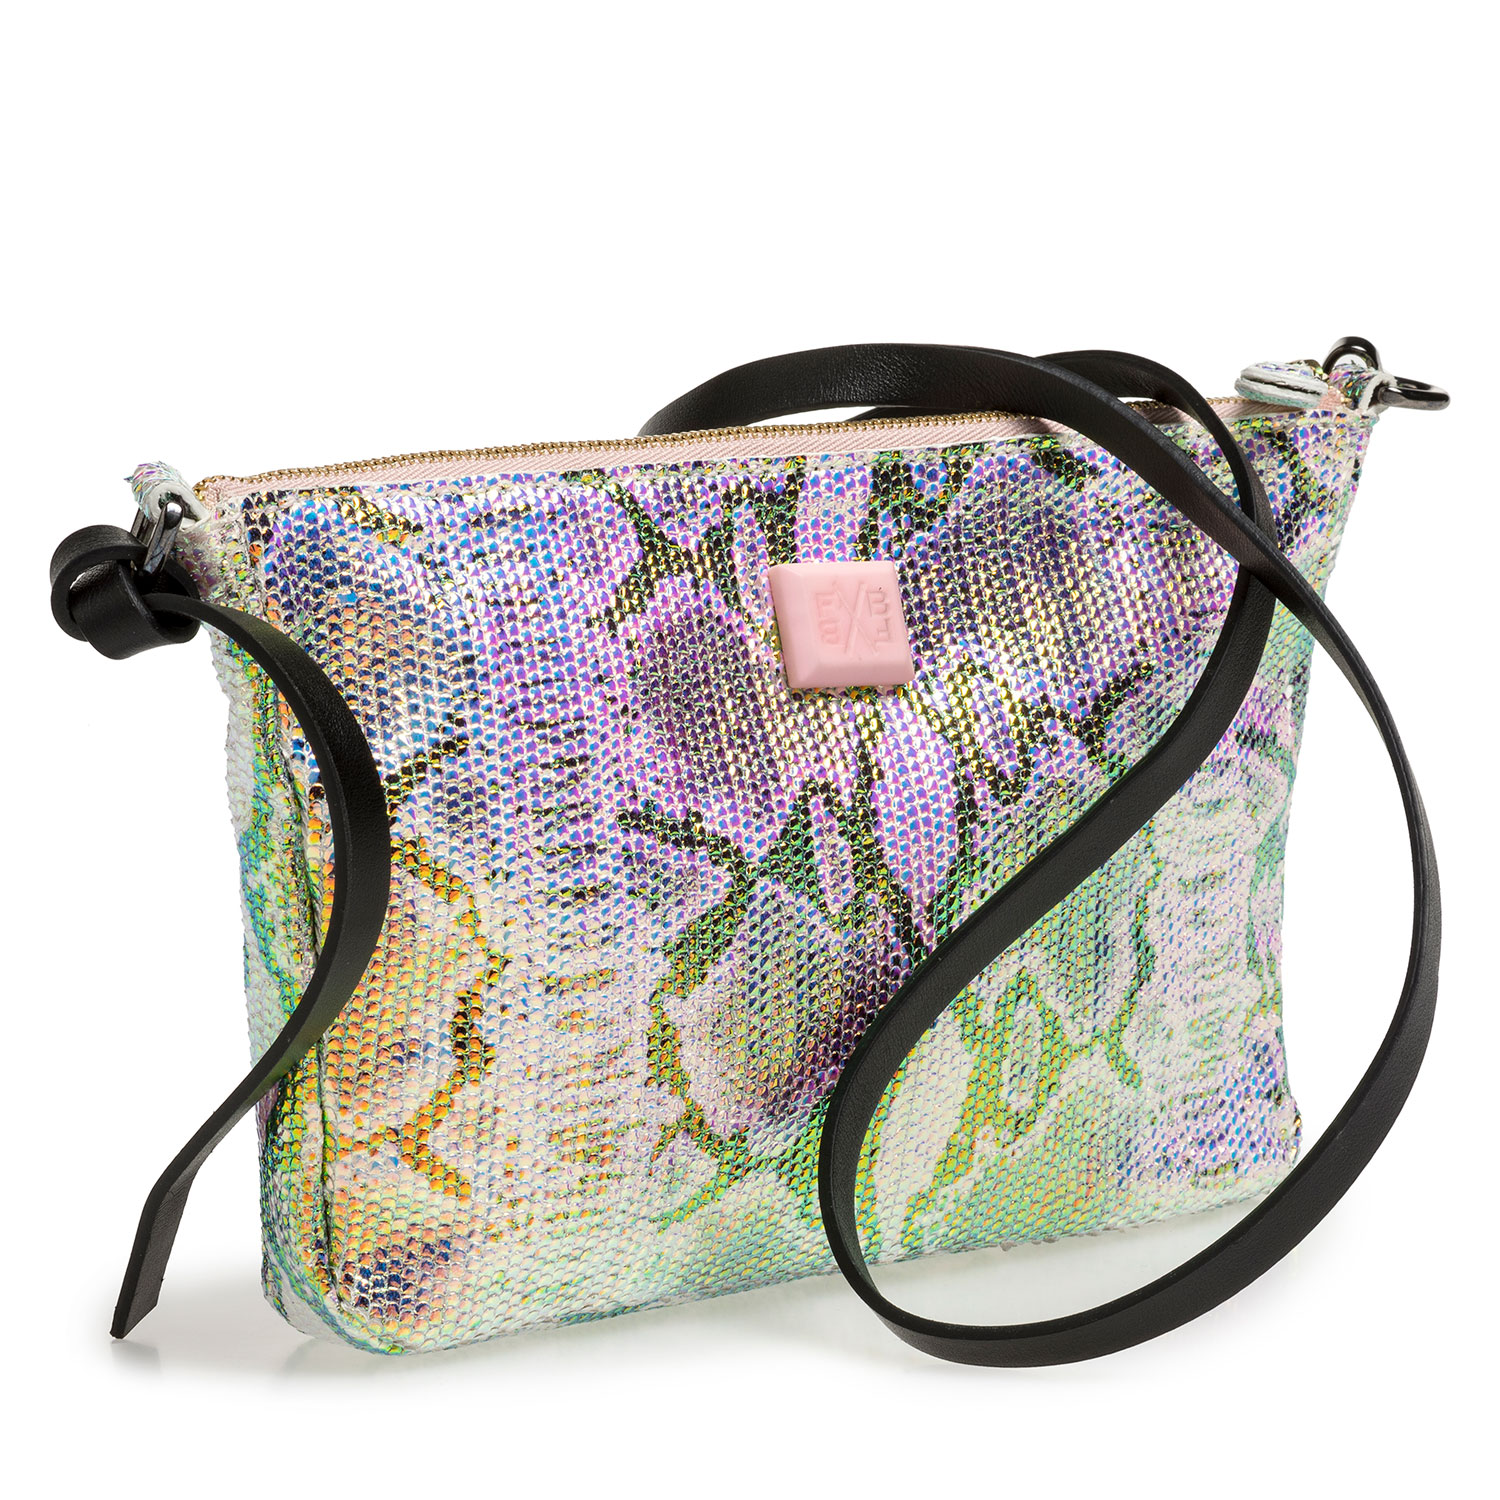 89019/06 - Leather bag with green/gold metallic print